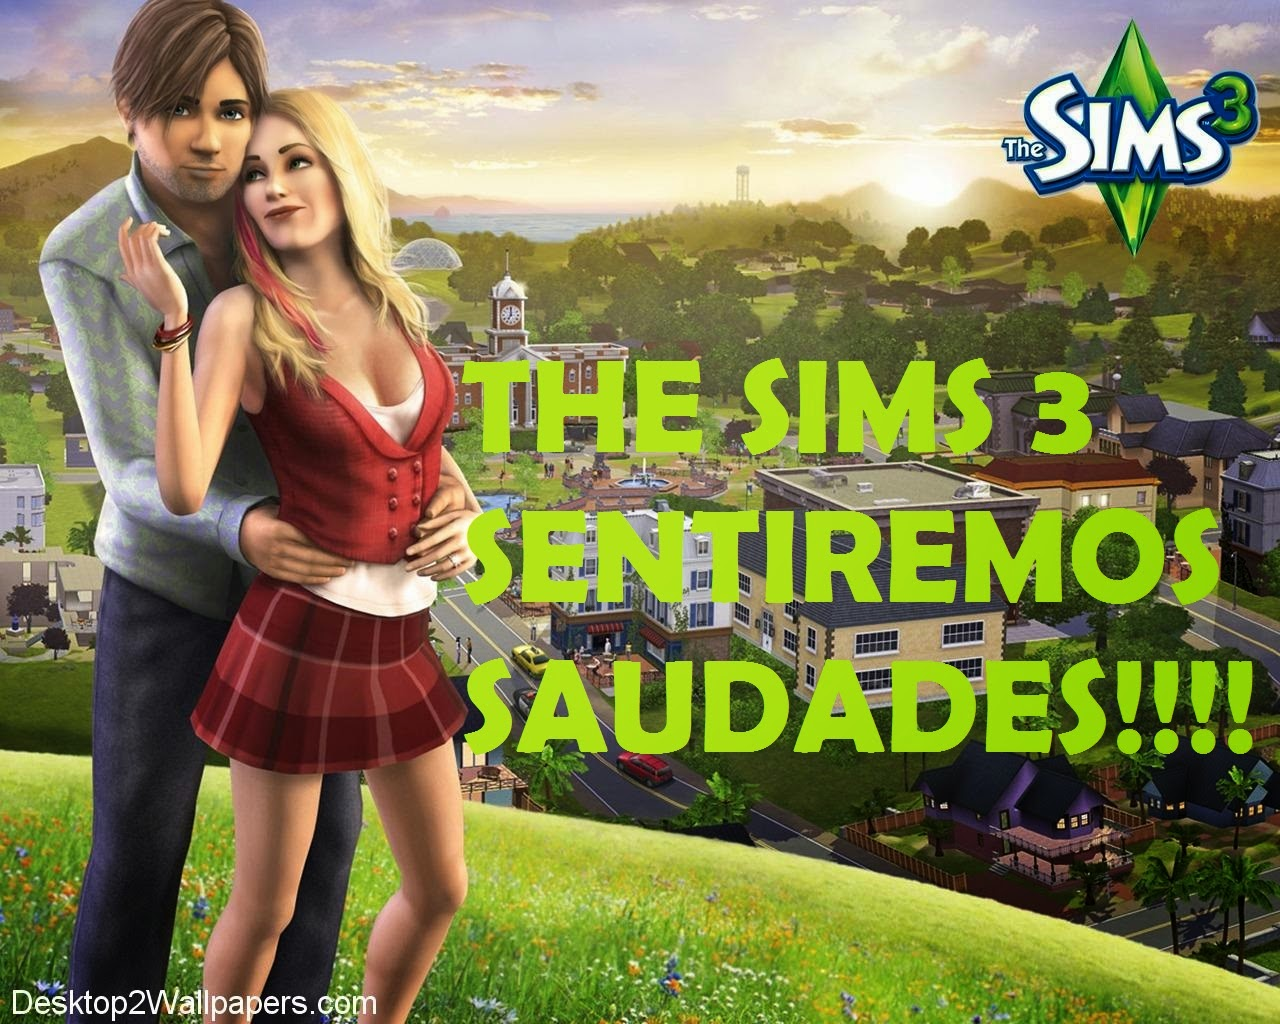 sims 3 writing skill Sims 4 writing skill guide 5th april 2016 22nd october 2016 simmer 0 comments the sims 4 writing skill is a great way for your sim to earn lots of simoleans from writing and publishing their own books.